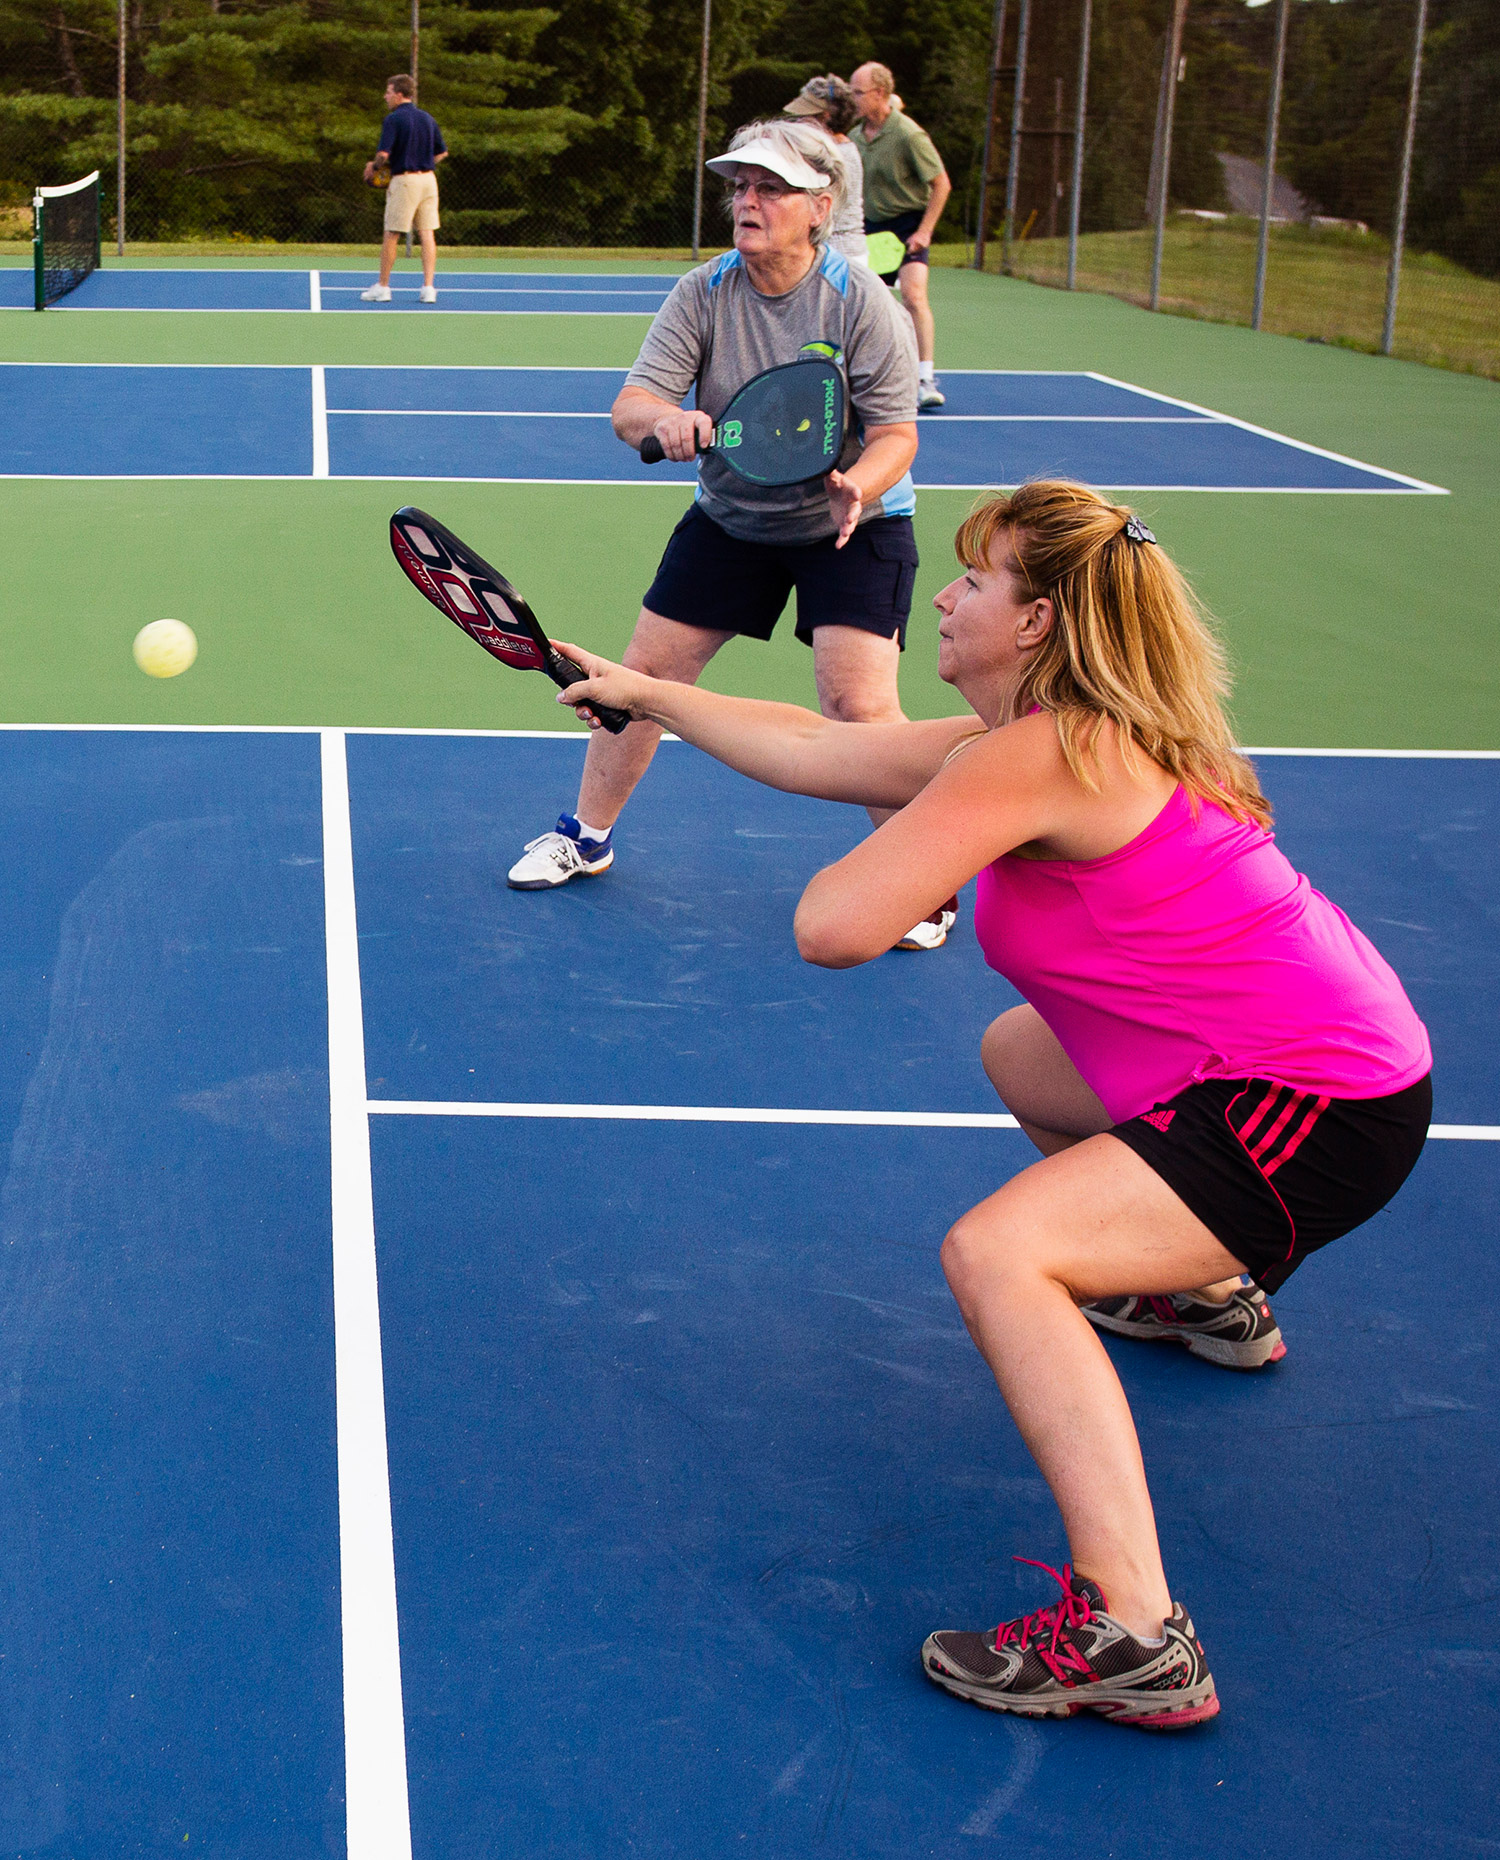 Sue Ann Smith of Gorham returns a volley during pickleball matches in Gorham. Carl D. Walsh/Staff Photographer